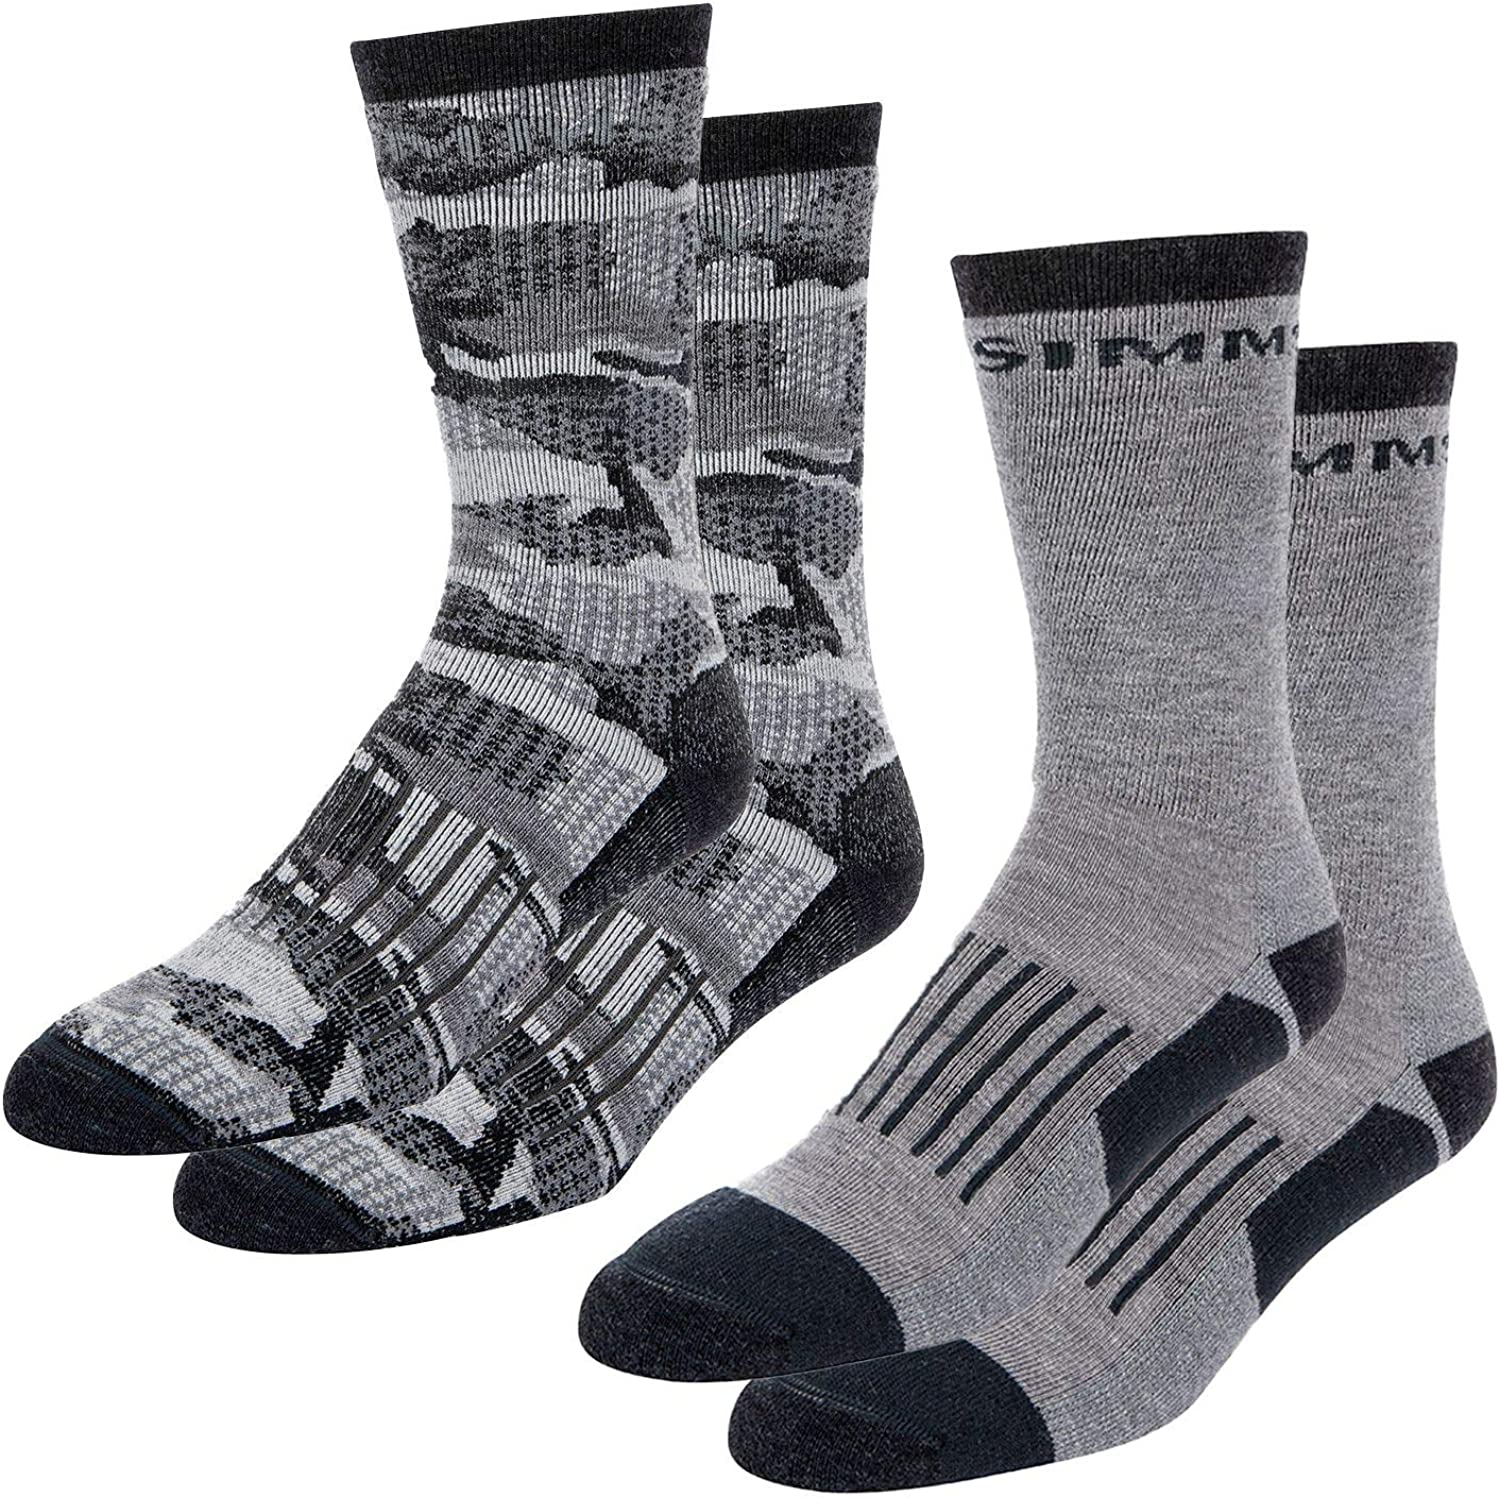 Simms All stores are sold Men's Ranking TOP3 Merino Midweight Sock Hiker 2-Pack